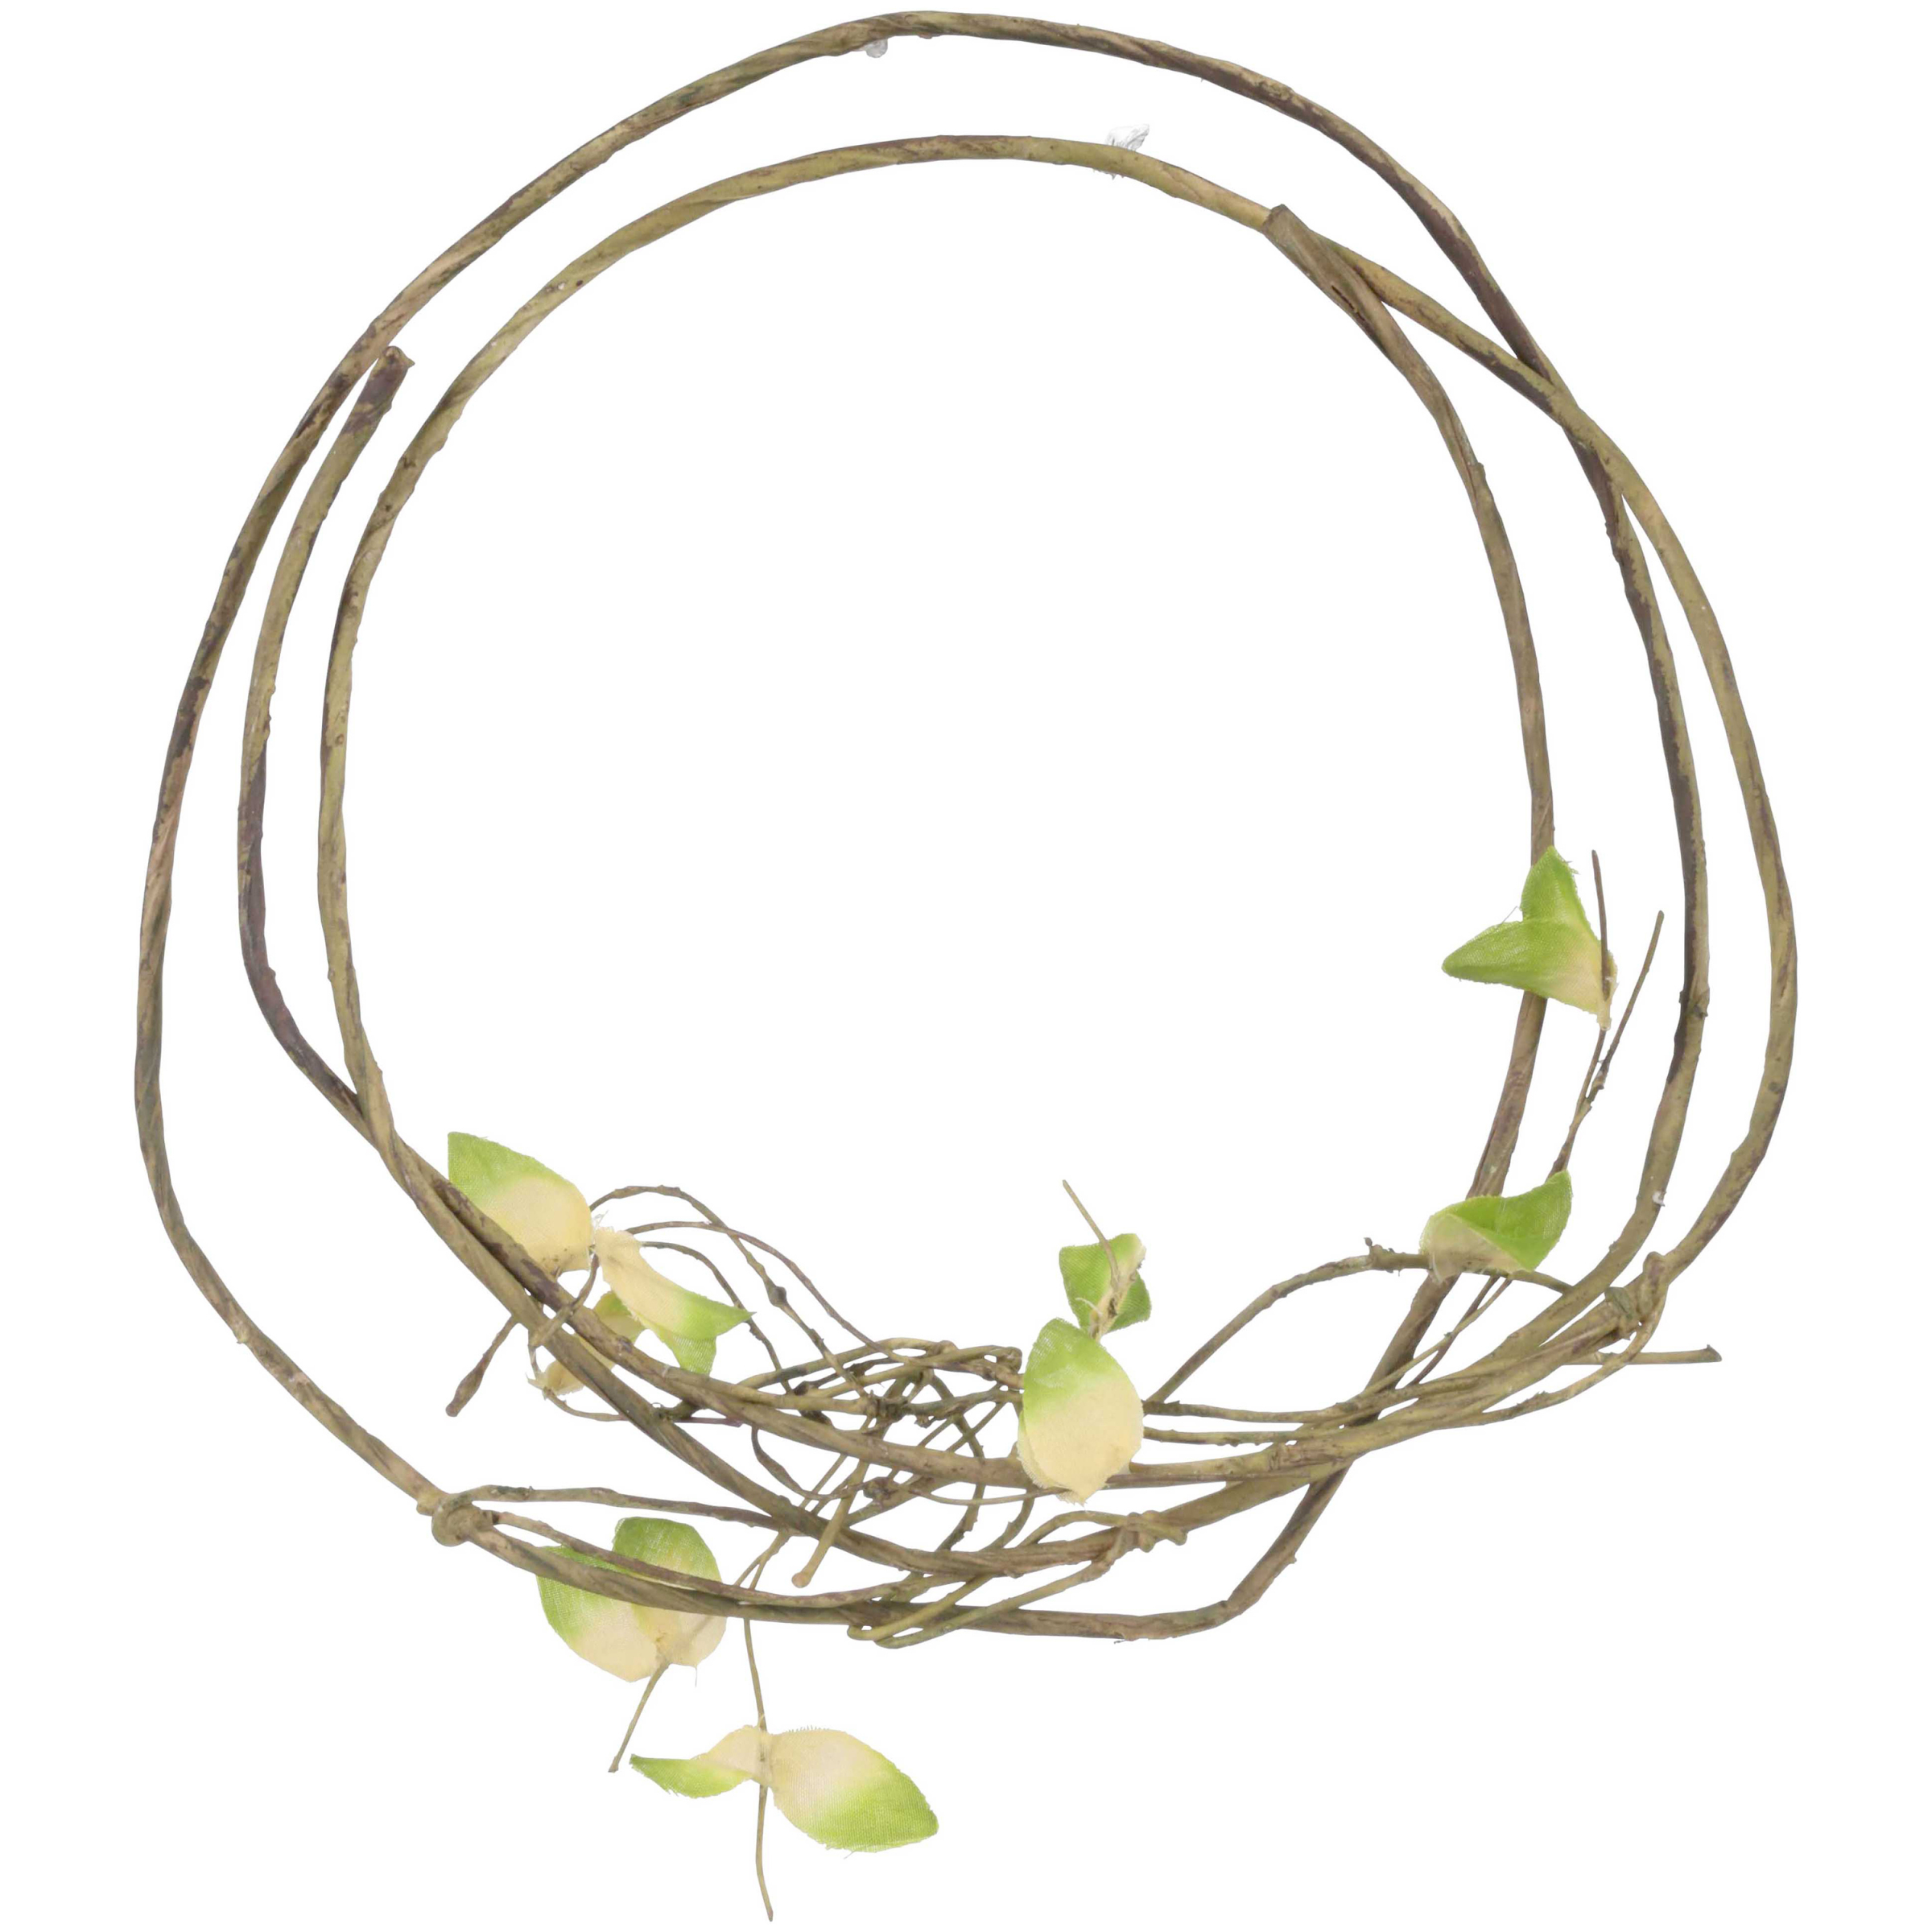 Reptology Life Science Climber Vine with Leaves Terrarium Accessory 5 ft. Pack